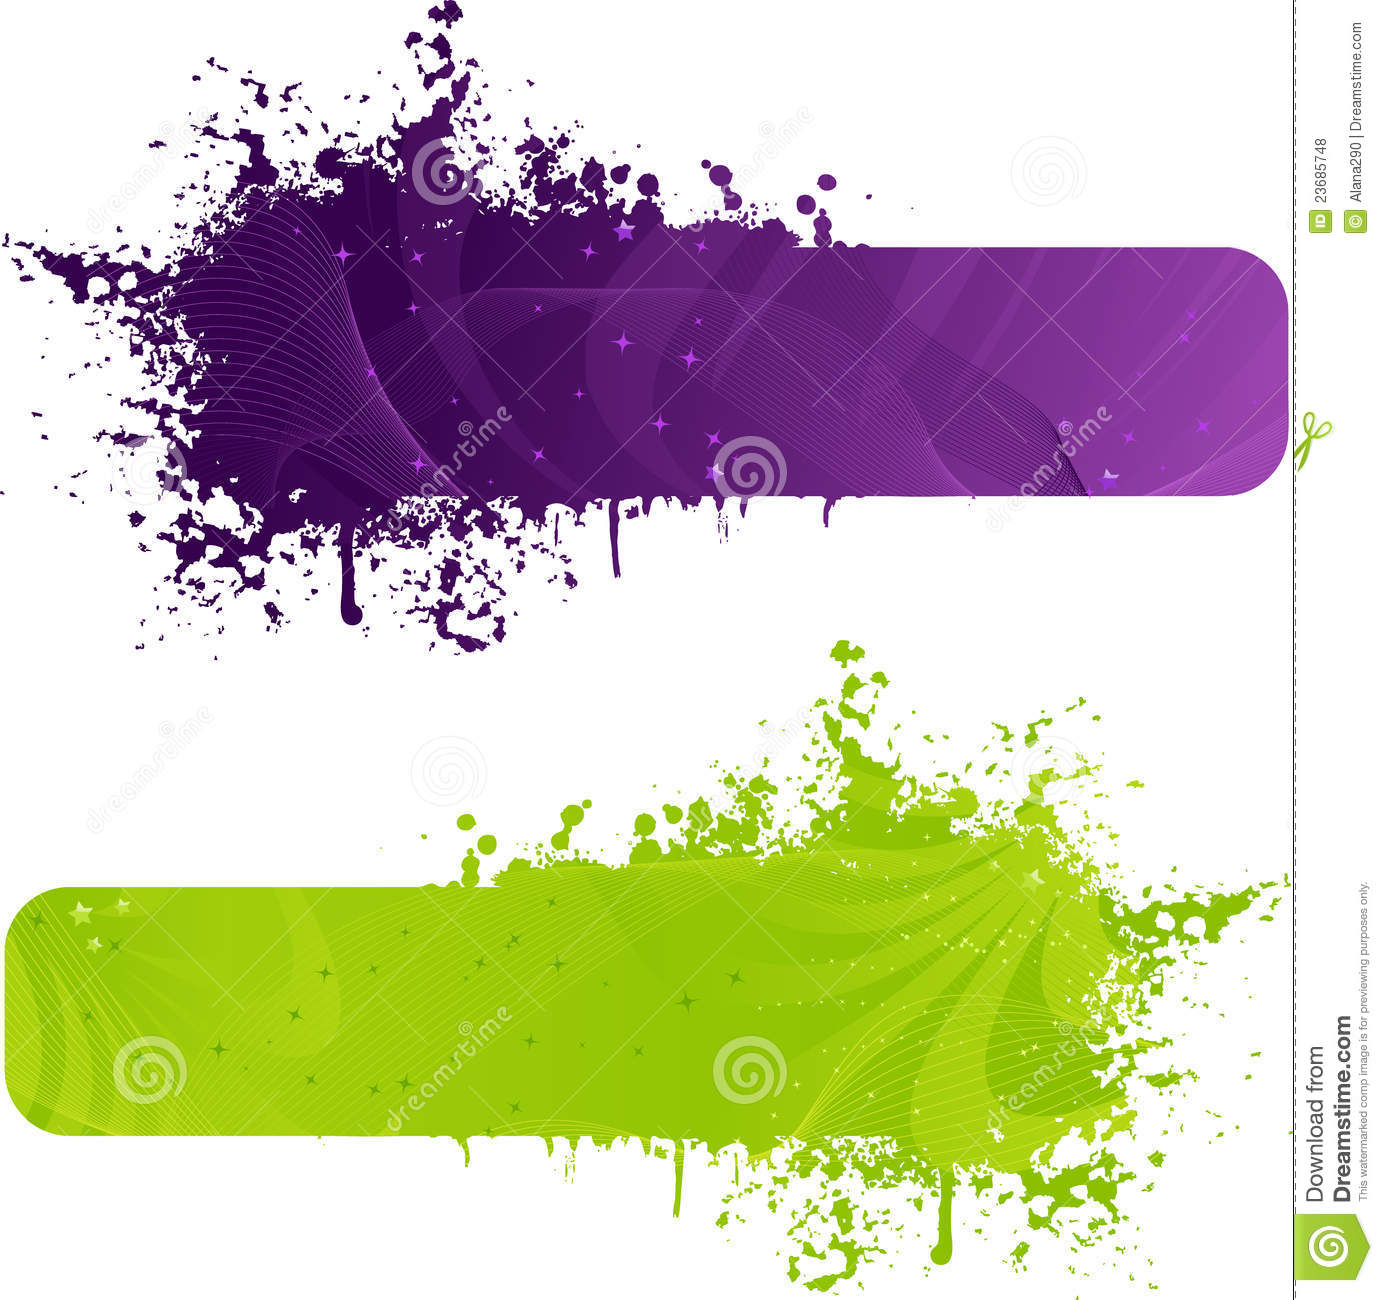 two grunge banner in purple and green colors stock vector